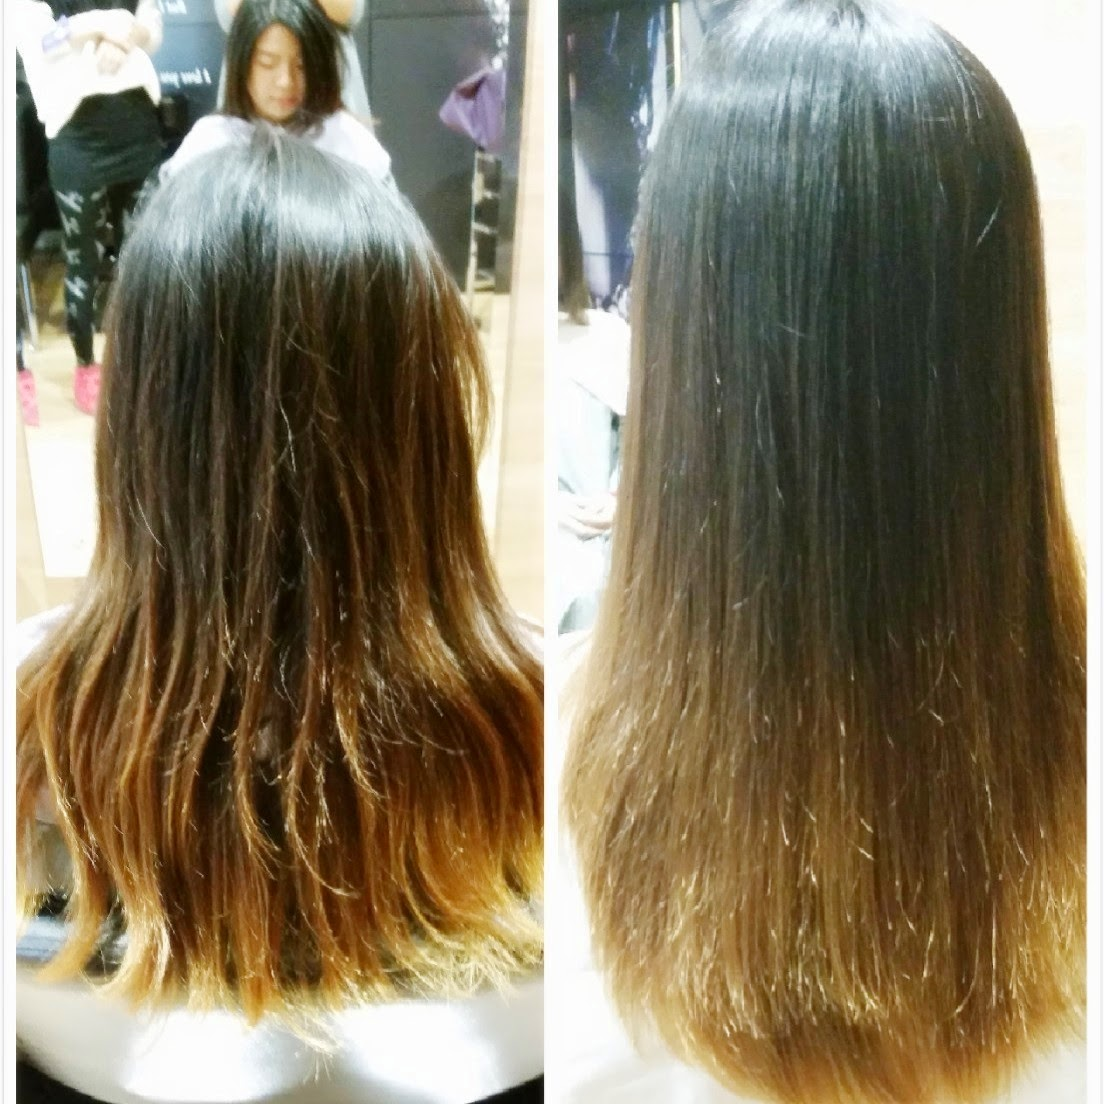 Straight perm didnt work - Shiseido Permanent Hair Straightening